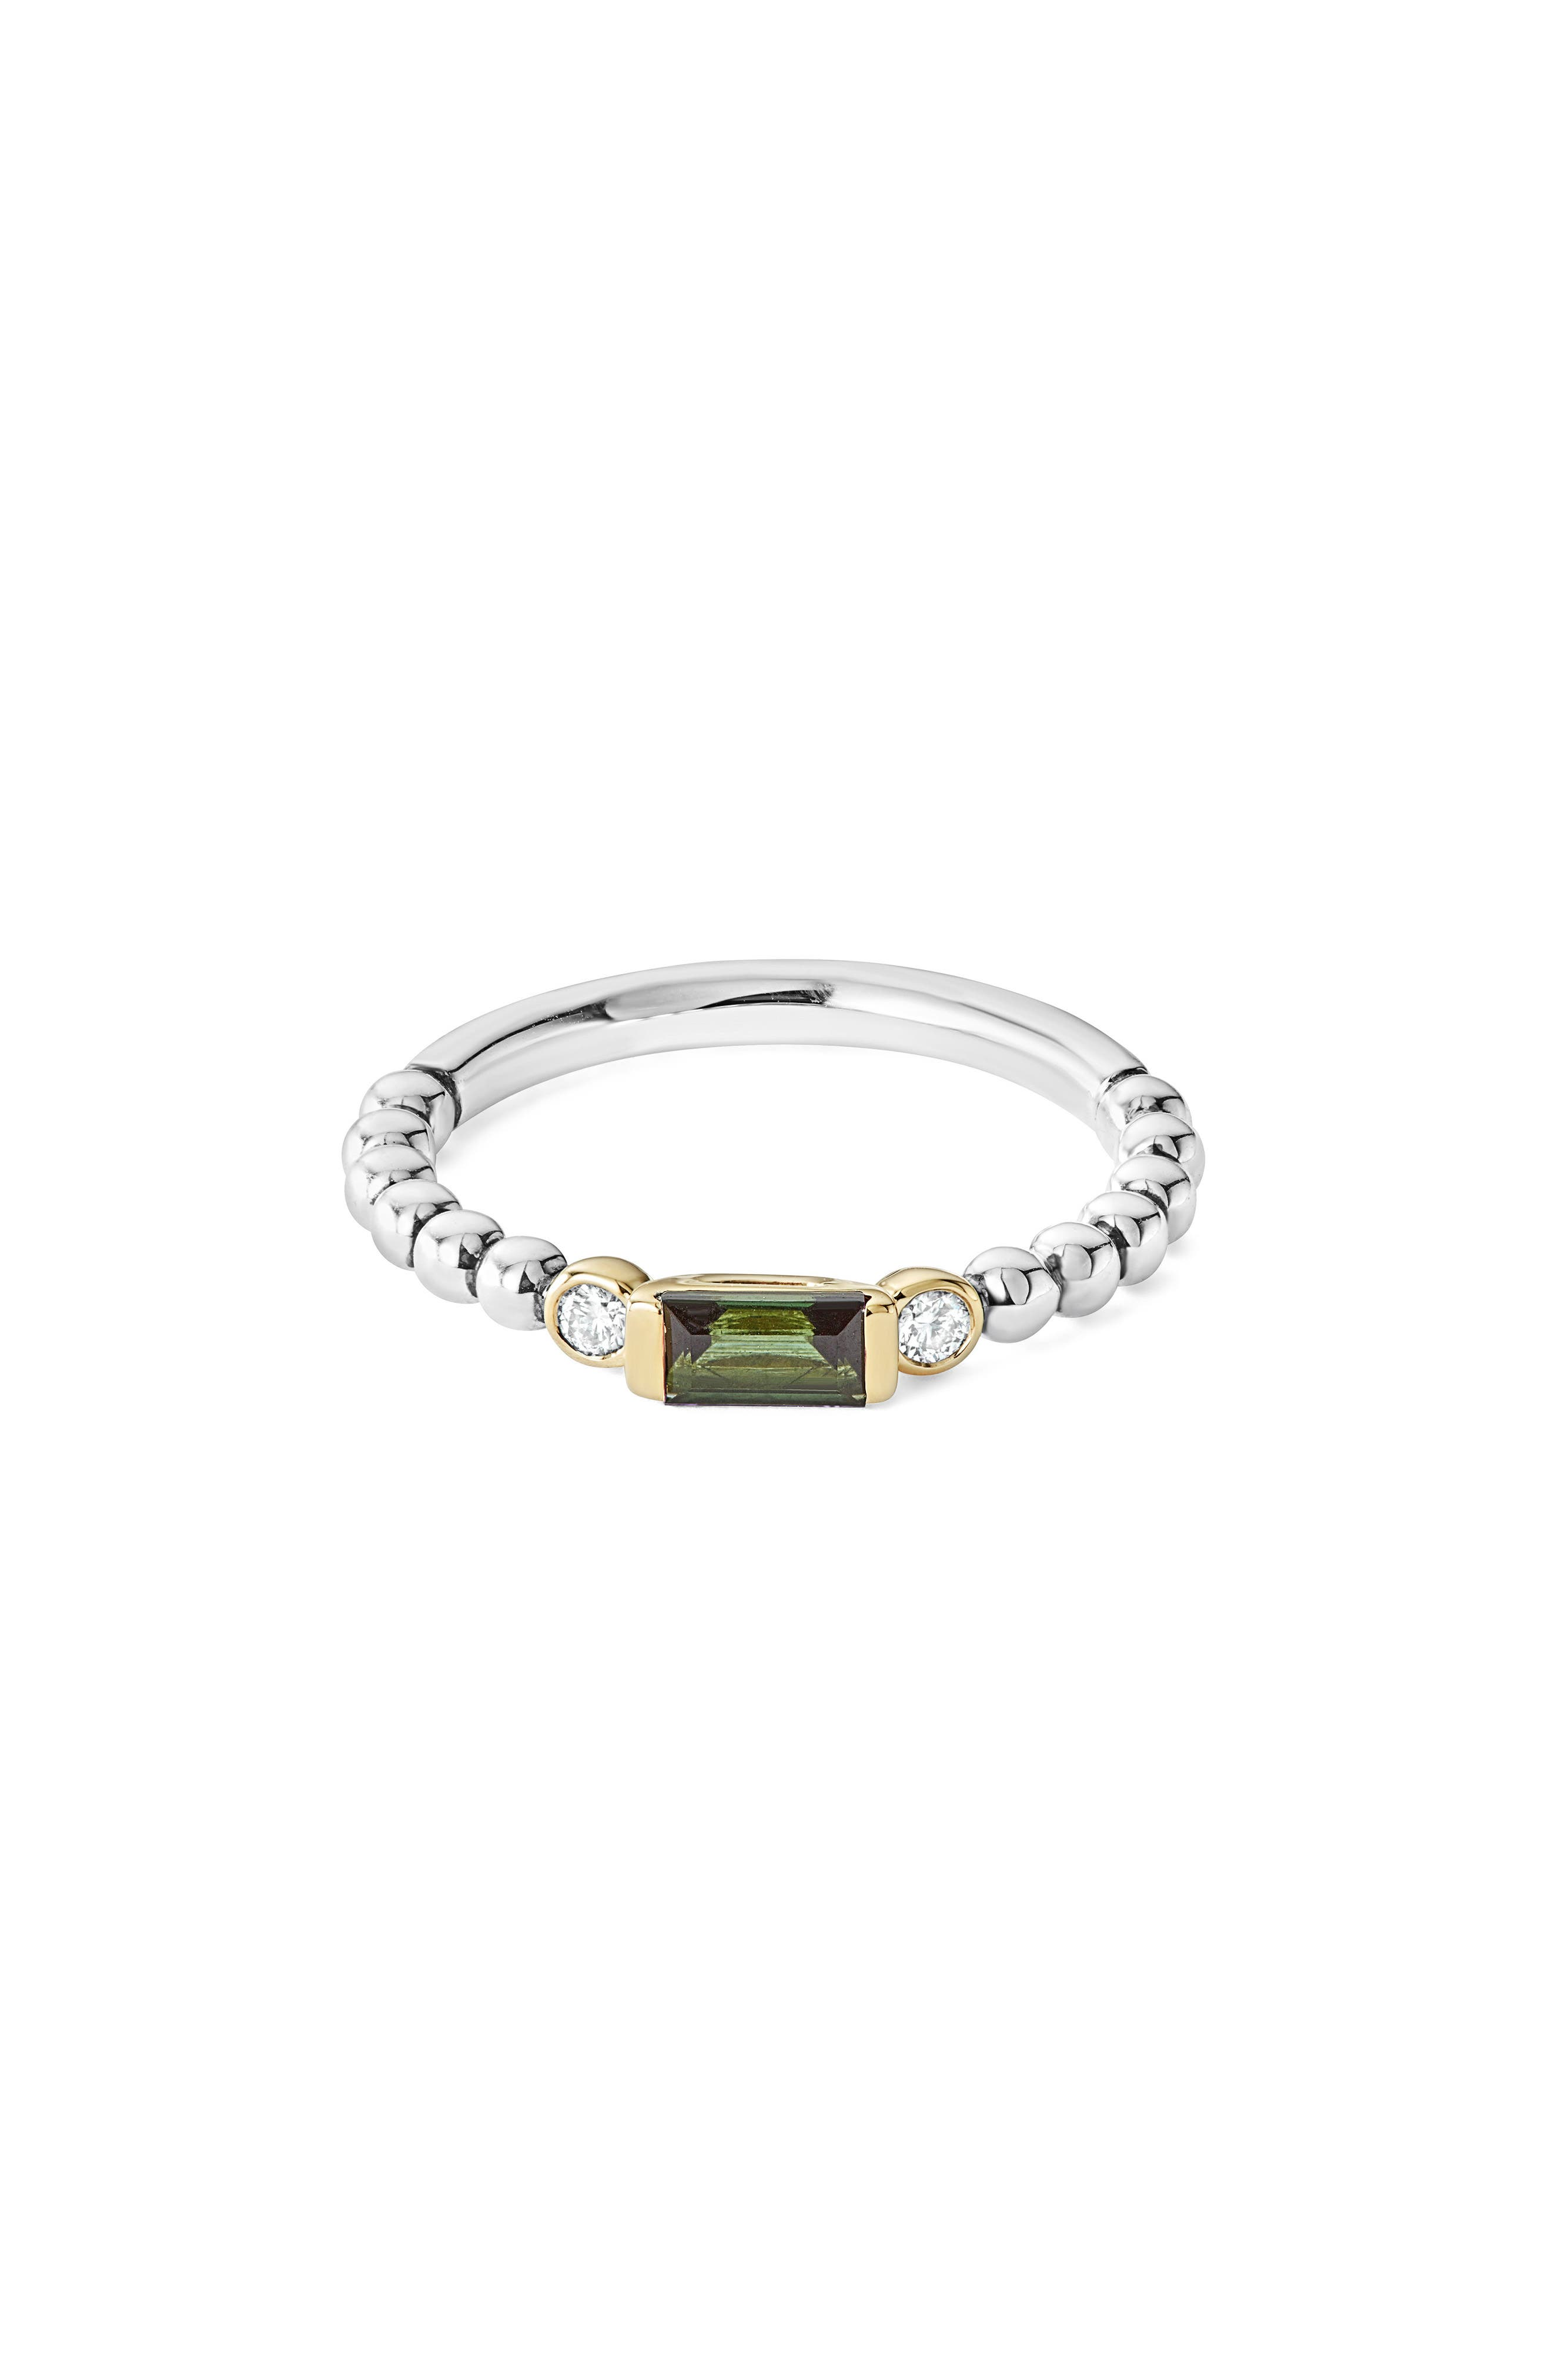 Gemstone Baguette and Diamond Beaded Band Ring,                         Main,                         color, SILVER/ 18K GOLD/ TOURMALINE